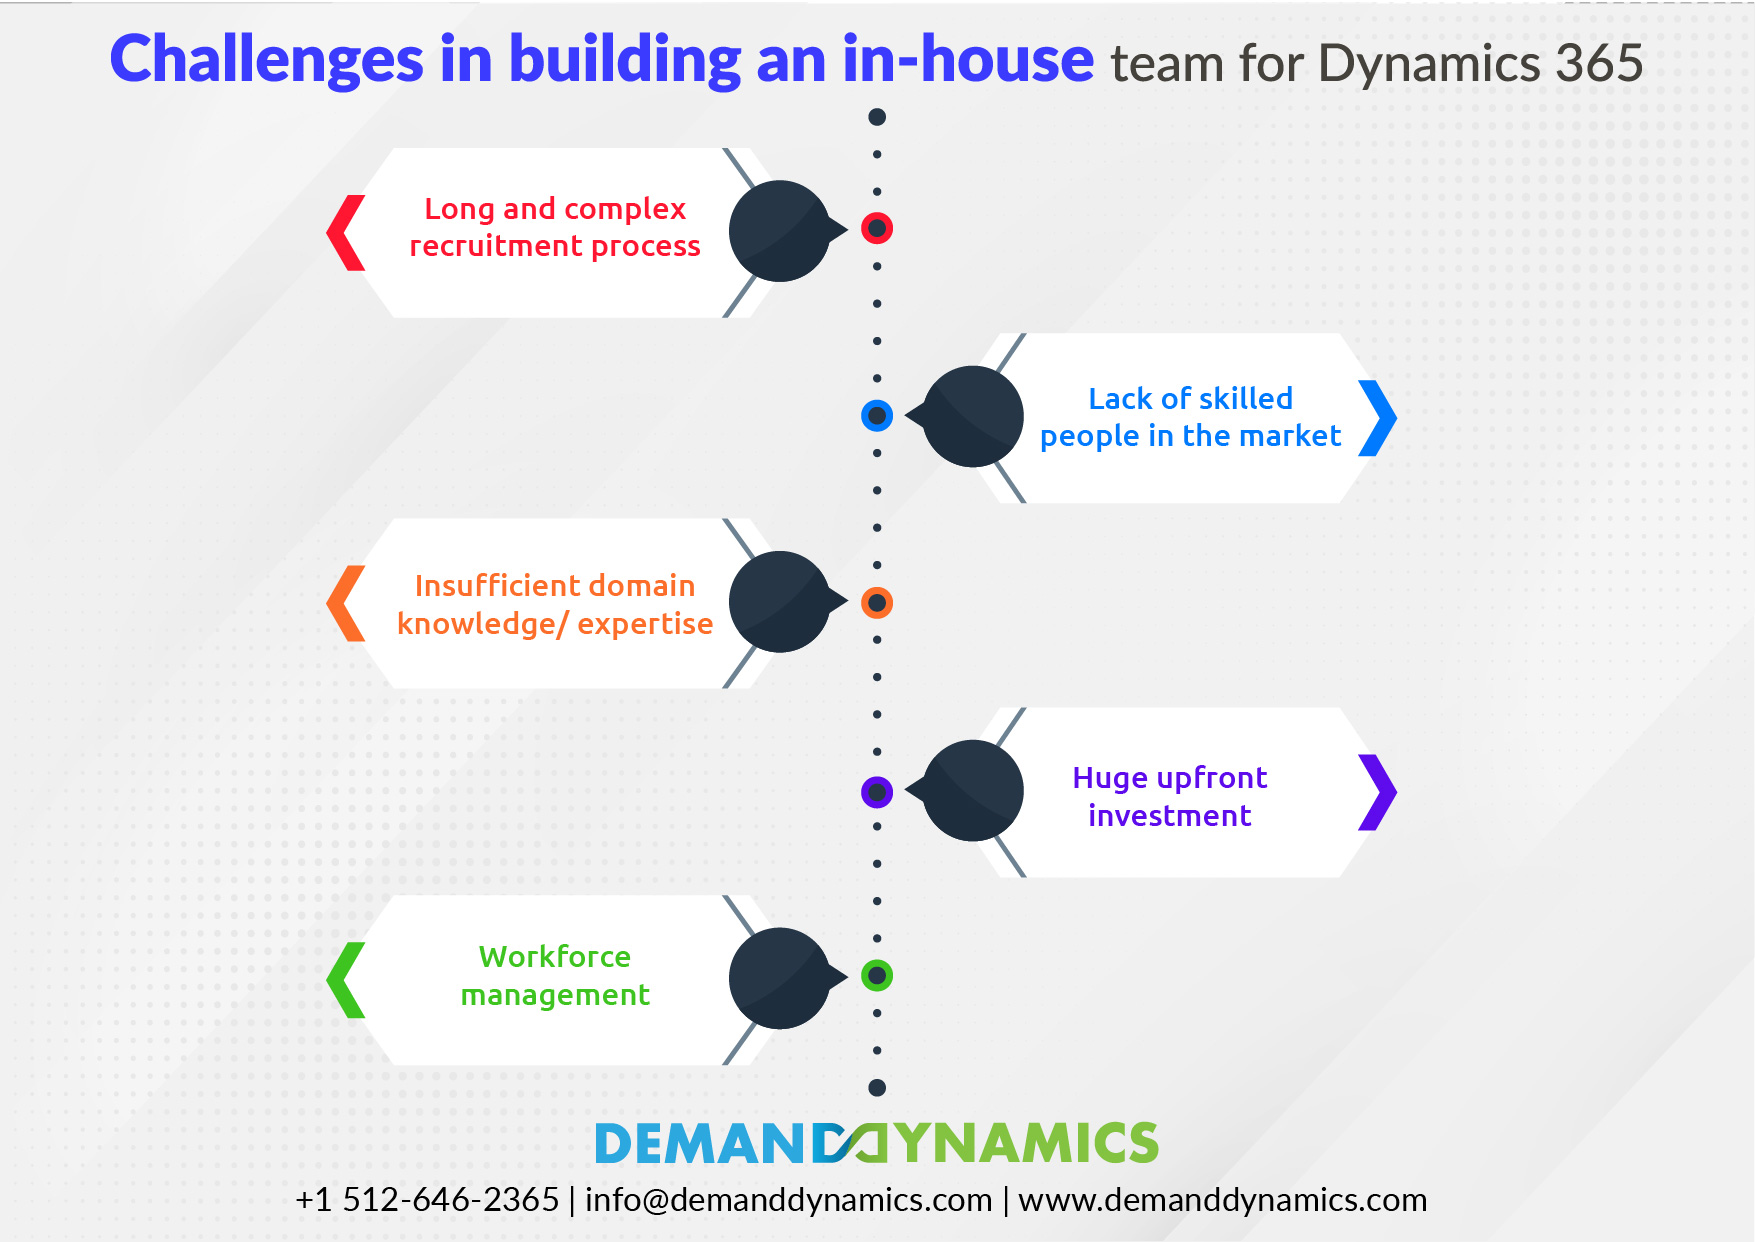 Challenges in building an in-house team